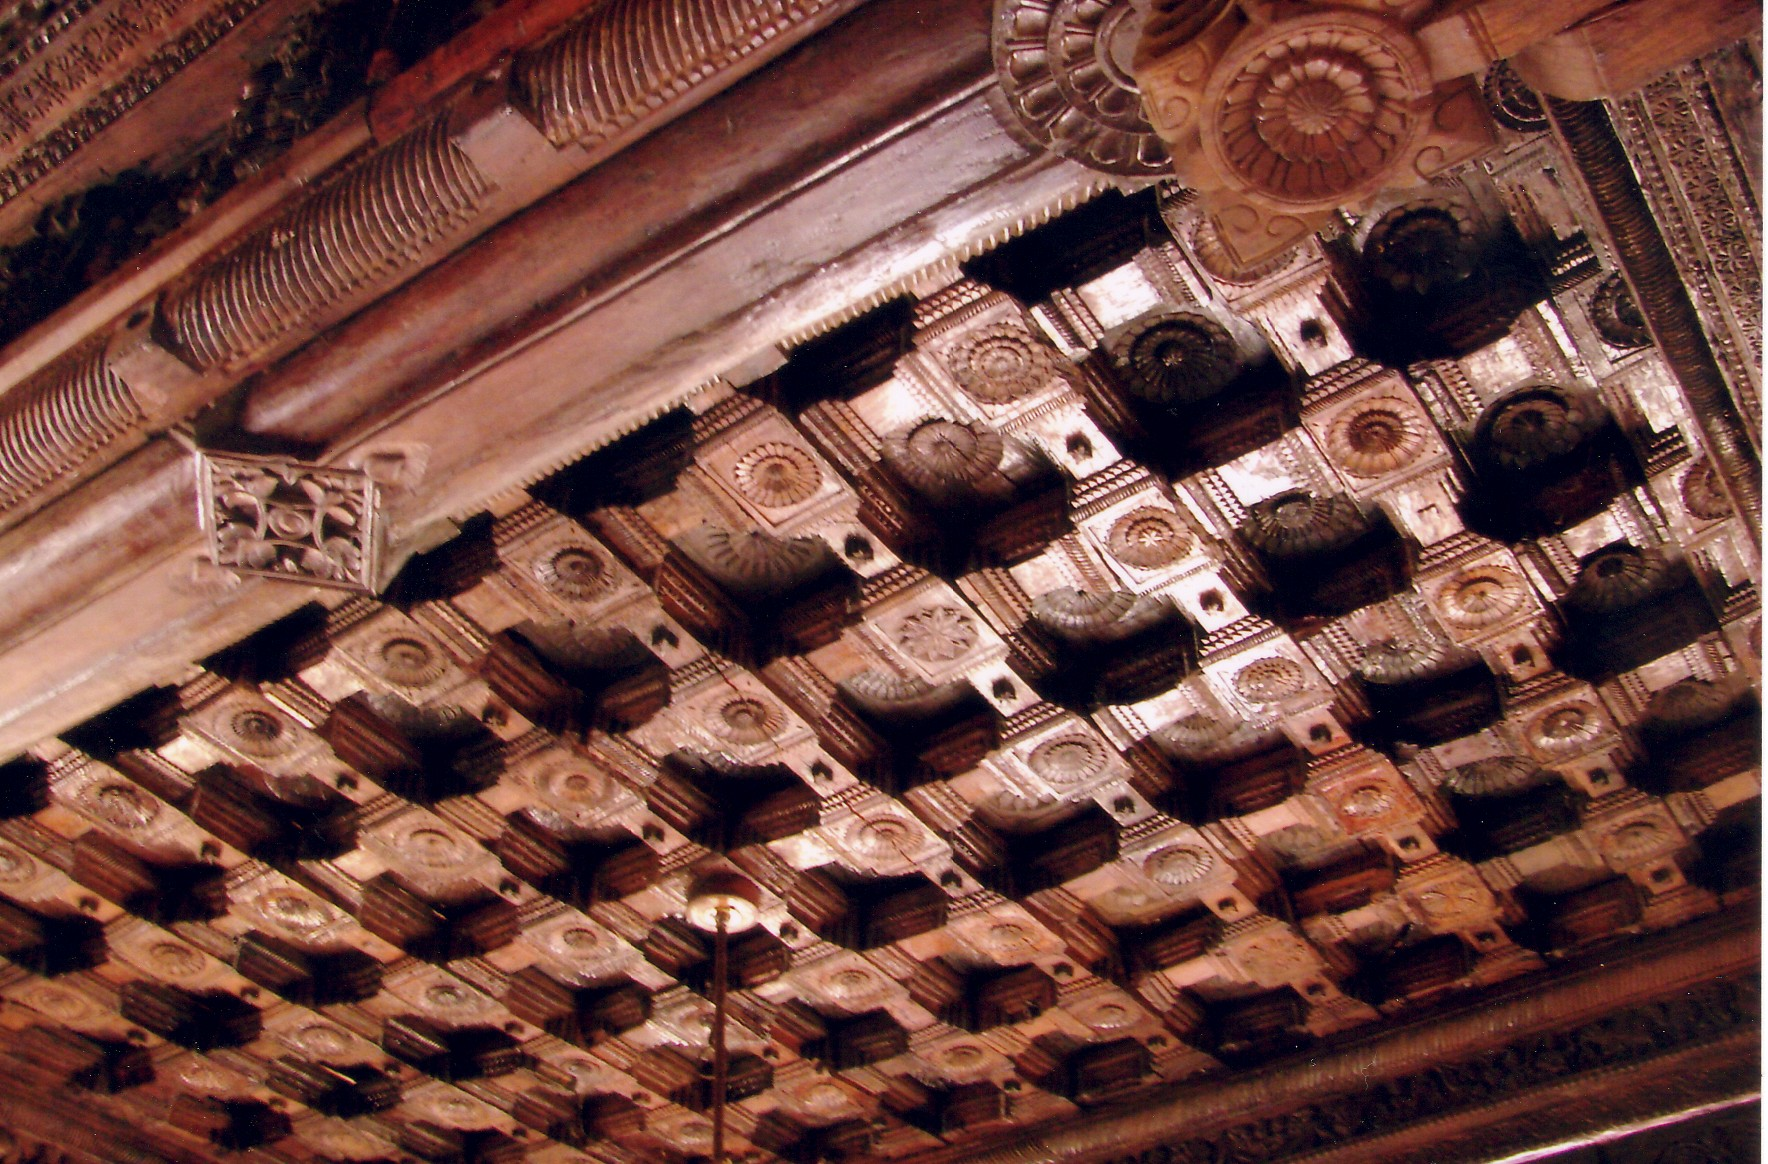 http://upload.wikimedia.org/wikipedia/commons/1/17/Rosewood_ceiling_at_Rameshwara_Temple_in_Keladi.jpg